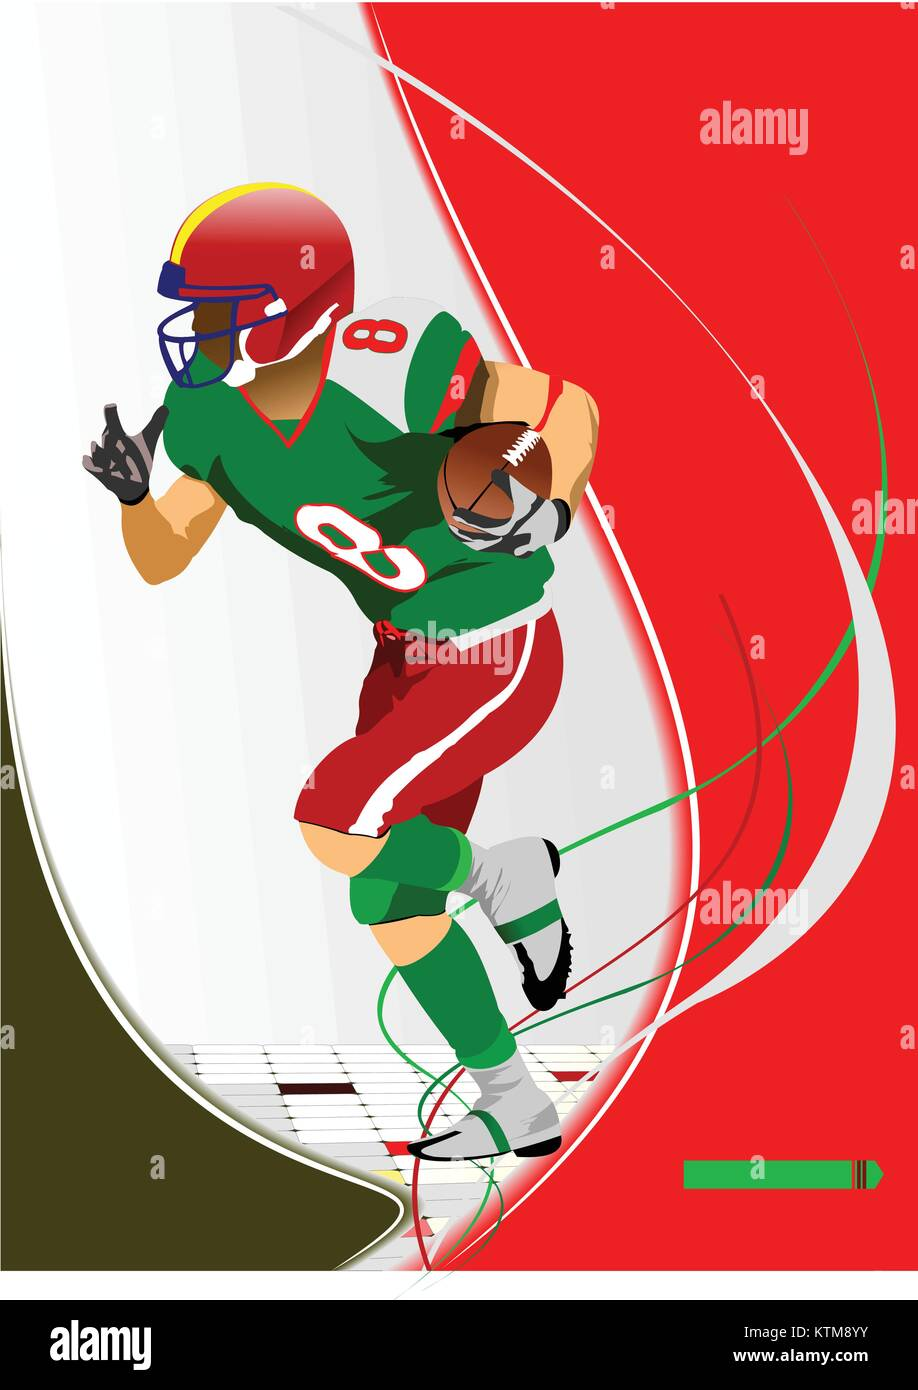 American football player s silhouettes in action. Vector illustration - Stock Vector